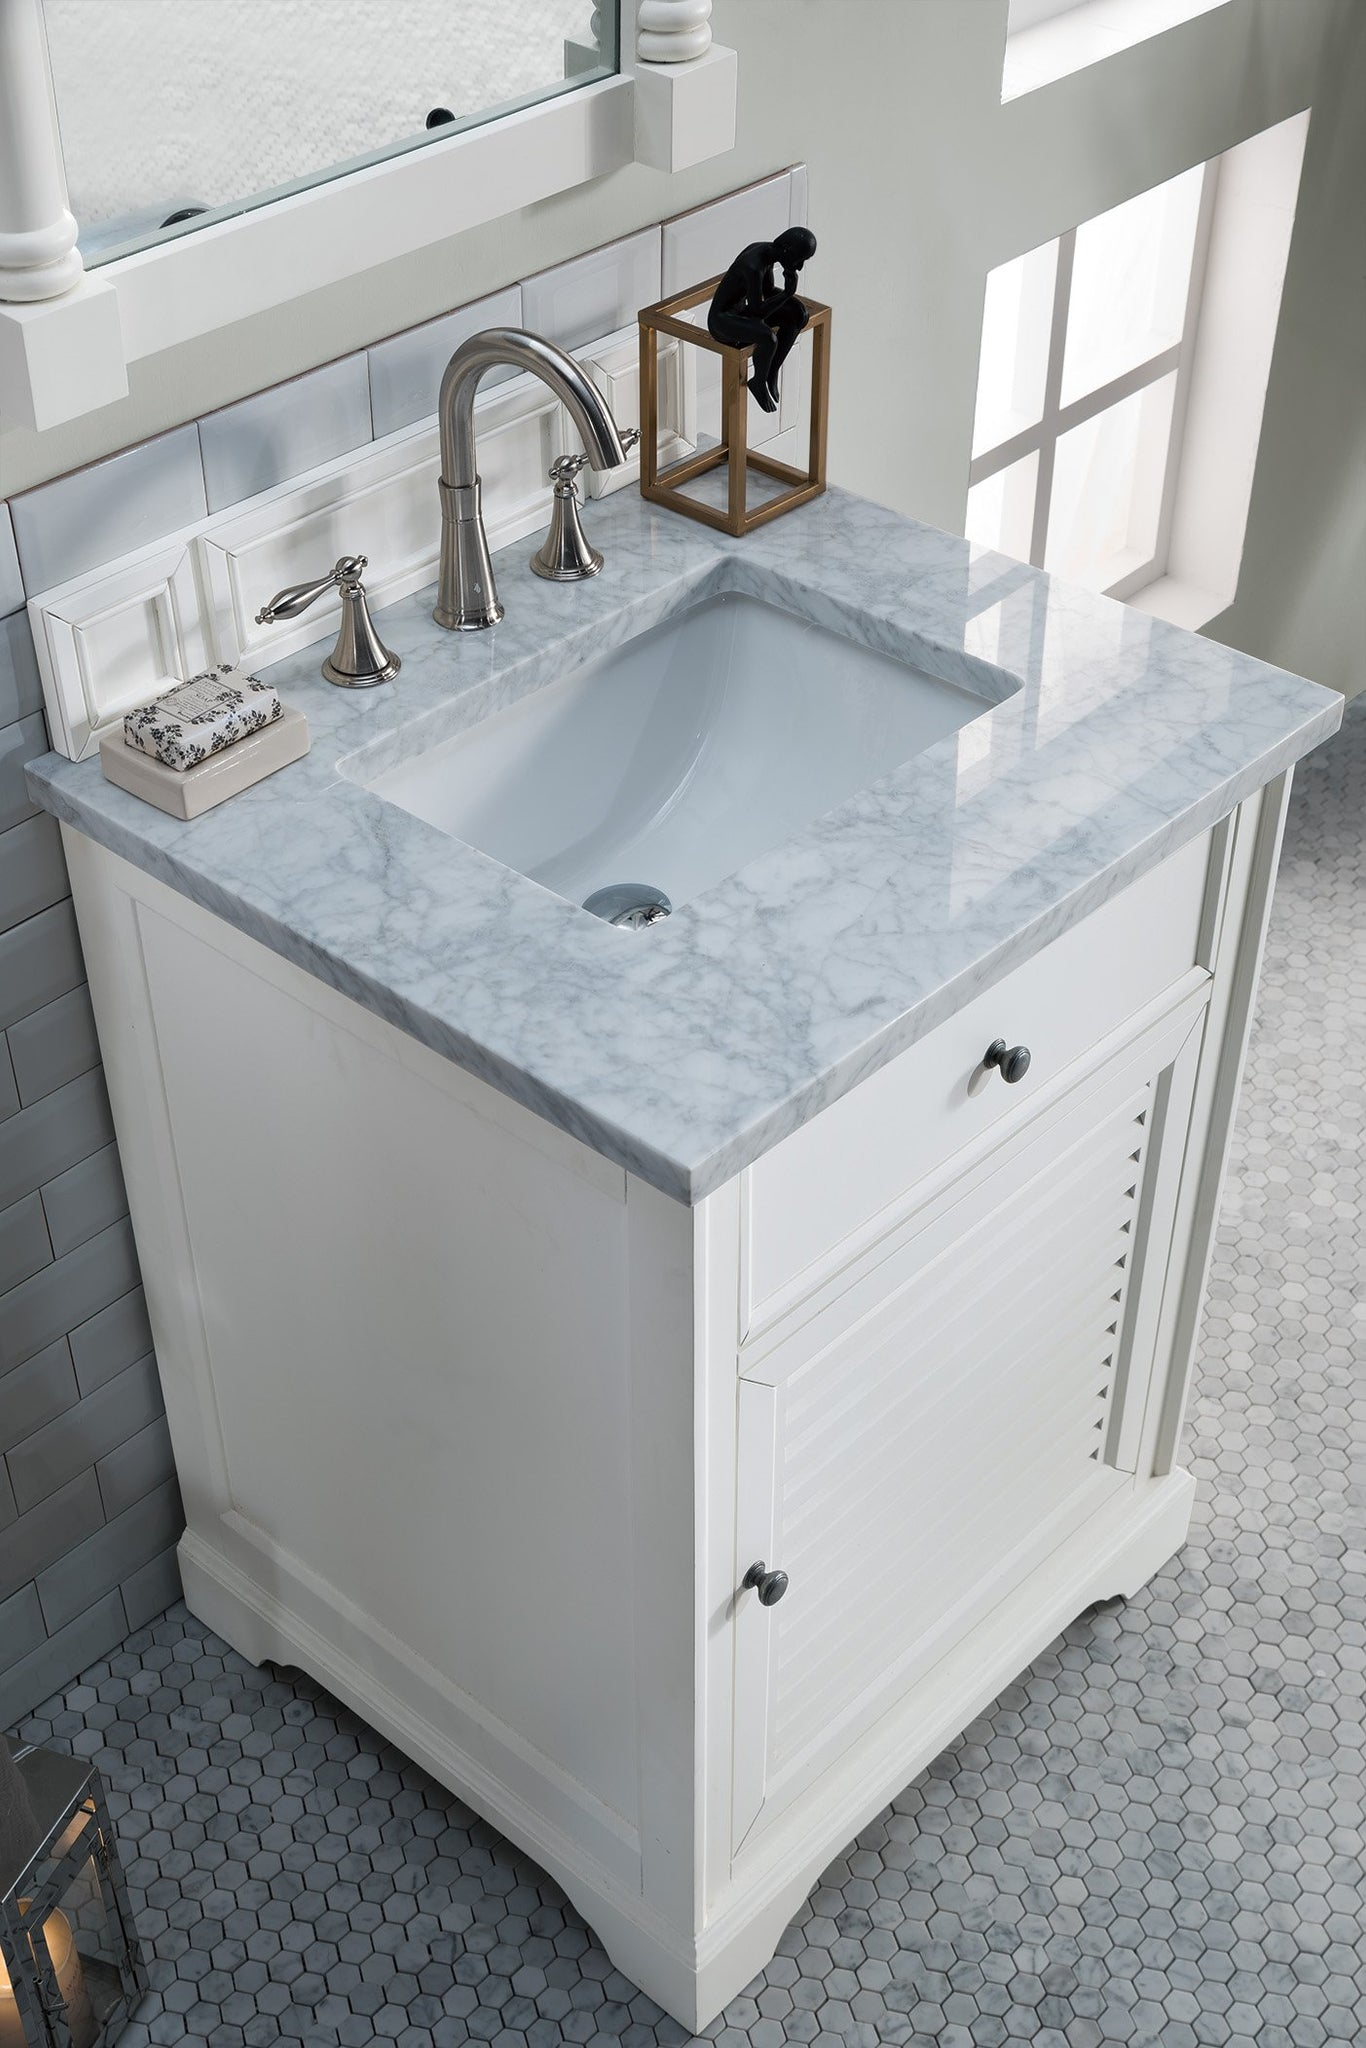 "Savannah 26"" Single Bathroom Vanity Single Bathroom Vanity James Martin Vanities"